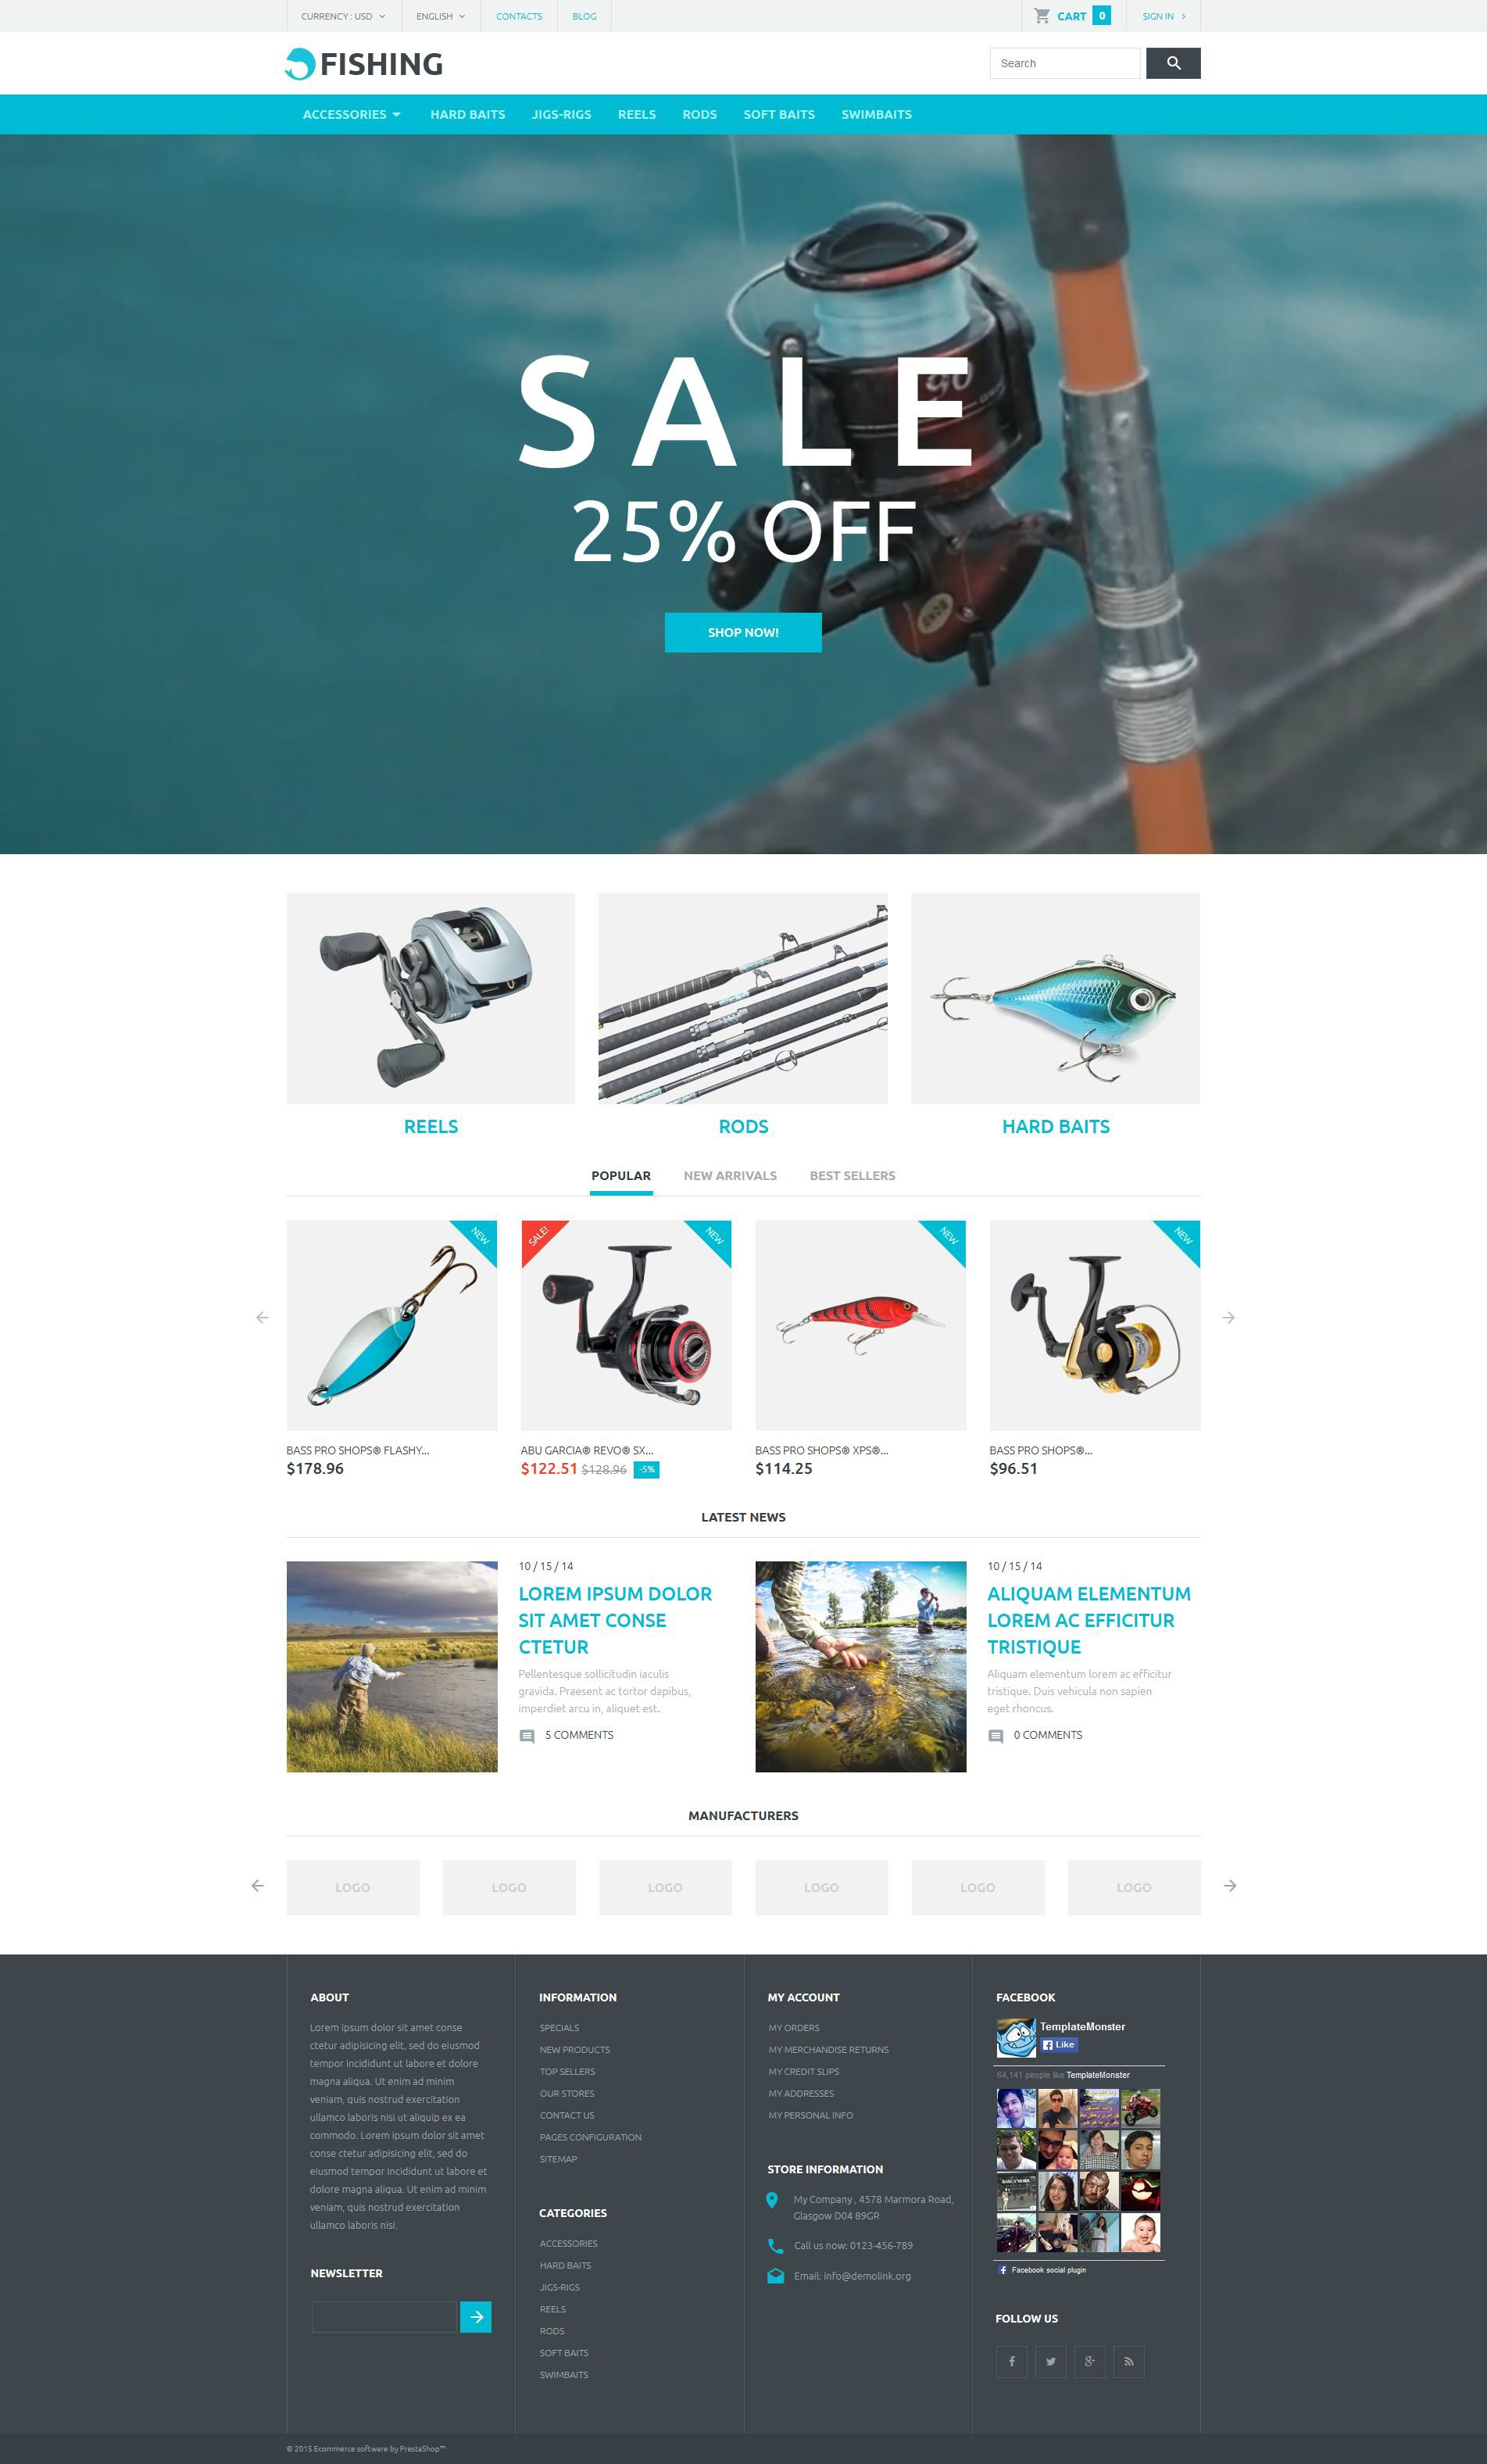 The Fishing Store PrestaShop Design 53815, one of the best PrestaShop themes of its kind (sport, most popular), also known as fishing store PrestaShop template, site PrestaShop template, fisherman PrestaShop template, boat PrestaShop template, rods PrestaShop template, reels PrestaShop template, baits PrestaShop template, swimbaits PrestaShop template, jigs PrestaShop template, rogs PrestaShop template, tools PrestaShop template, spinning PrestaShop template, fishing PrestaShop template, line and related with fishing store, site, fisherman, boat, rods, reels, baits, swimbaits, jigs, rogs, tools, spinning, fishing, line, etc.